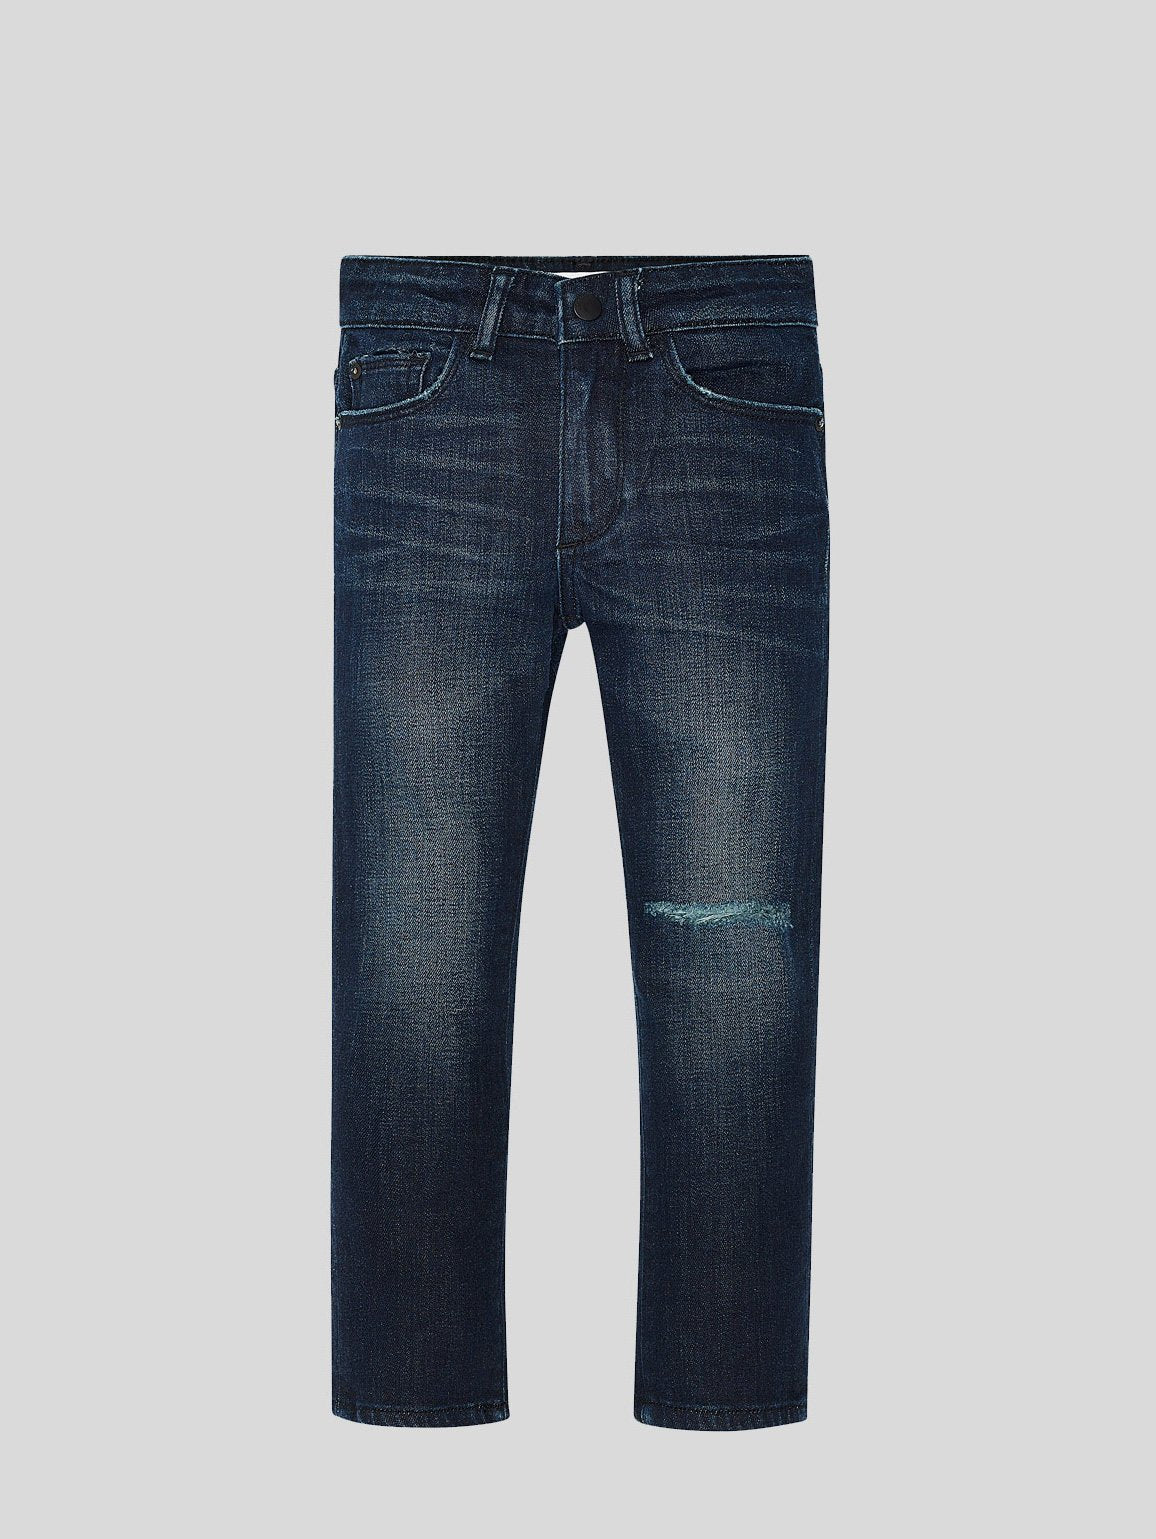 Boys - Distressed Slim Denim - Brady/B Slim Circuit - DL1961